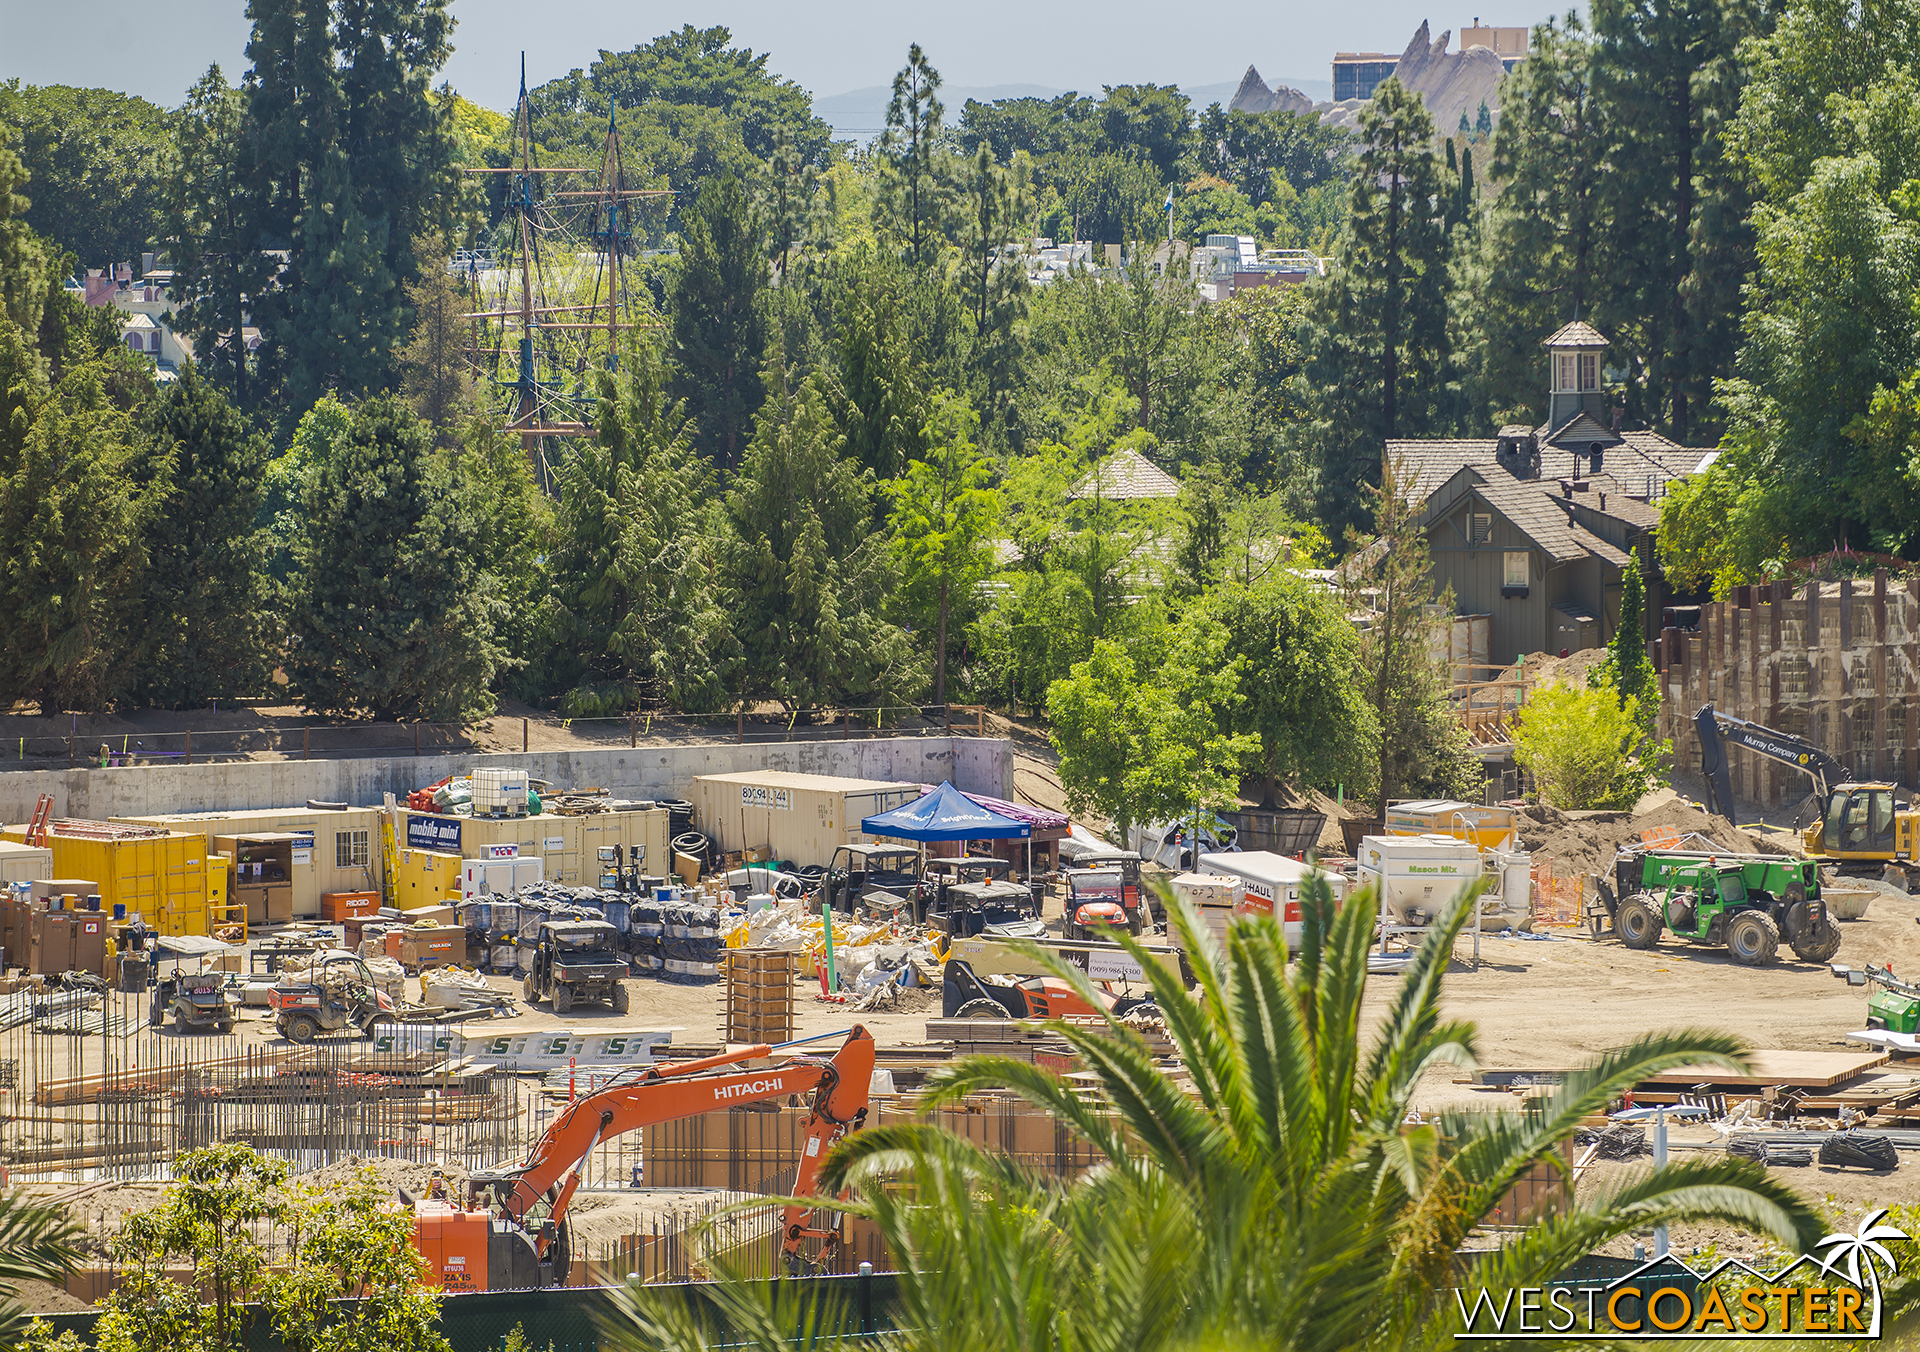 """And as we pan over toward the Hungry Bear, despite the added foliage, we can sort of see the progression of the Disneyland Railroad bridge that will span over the Critter Country entrance into """"Star Wars"""" Land."""